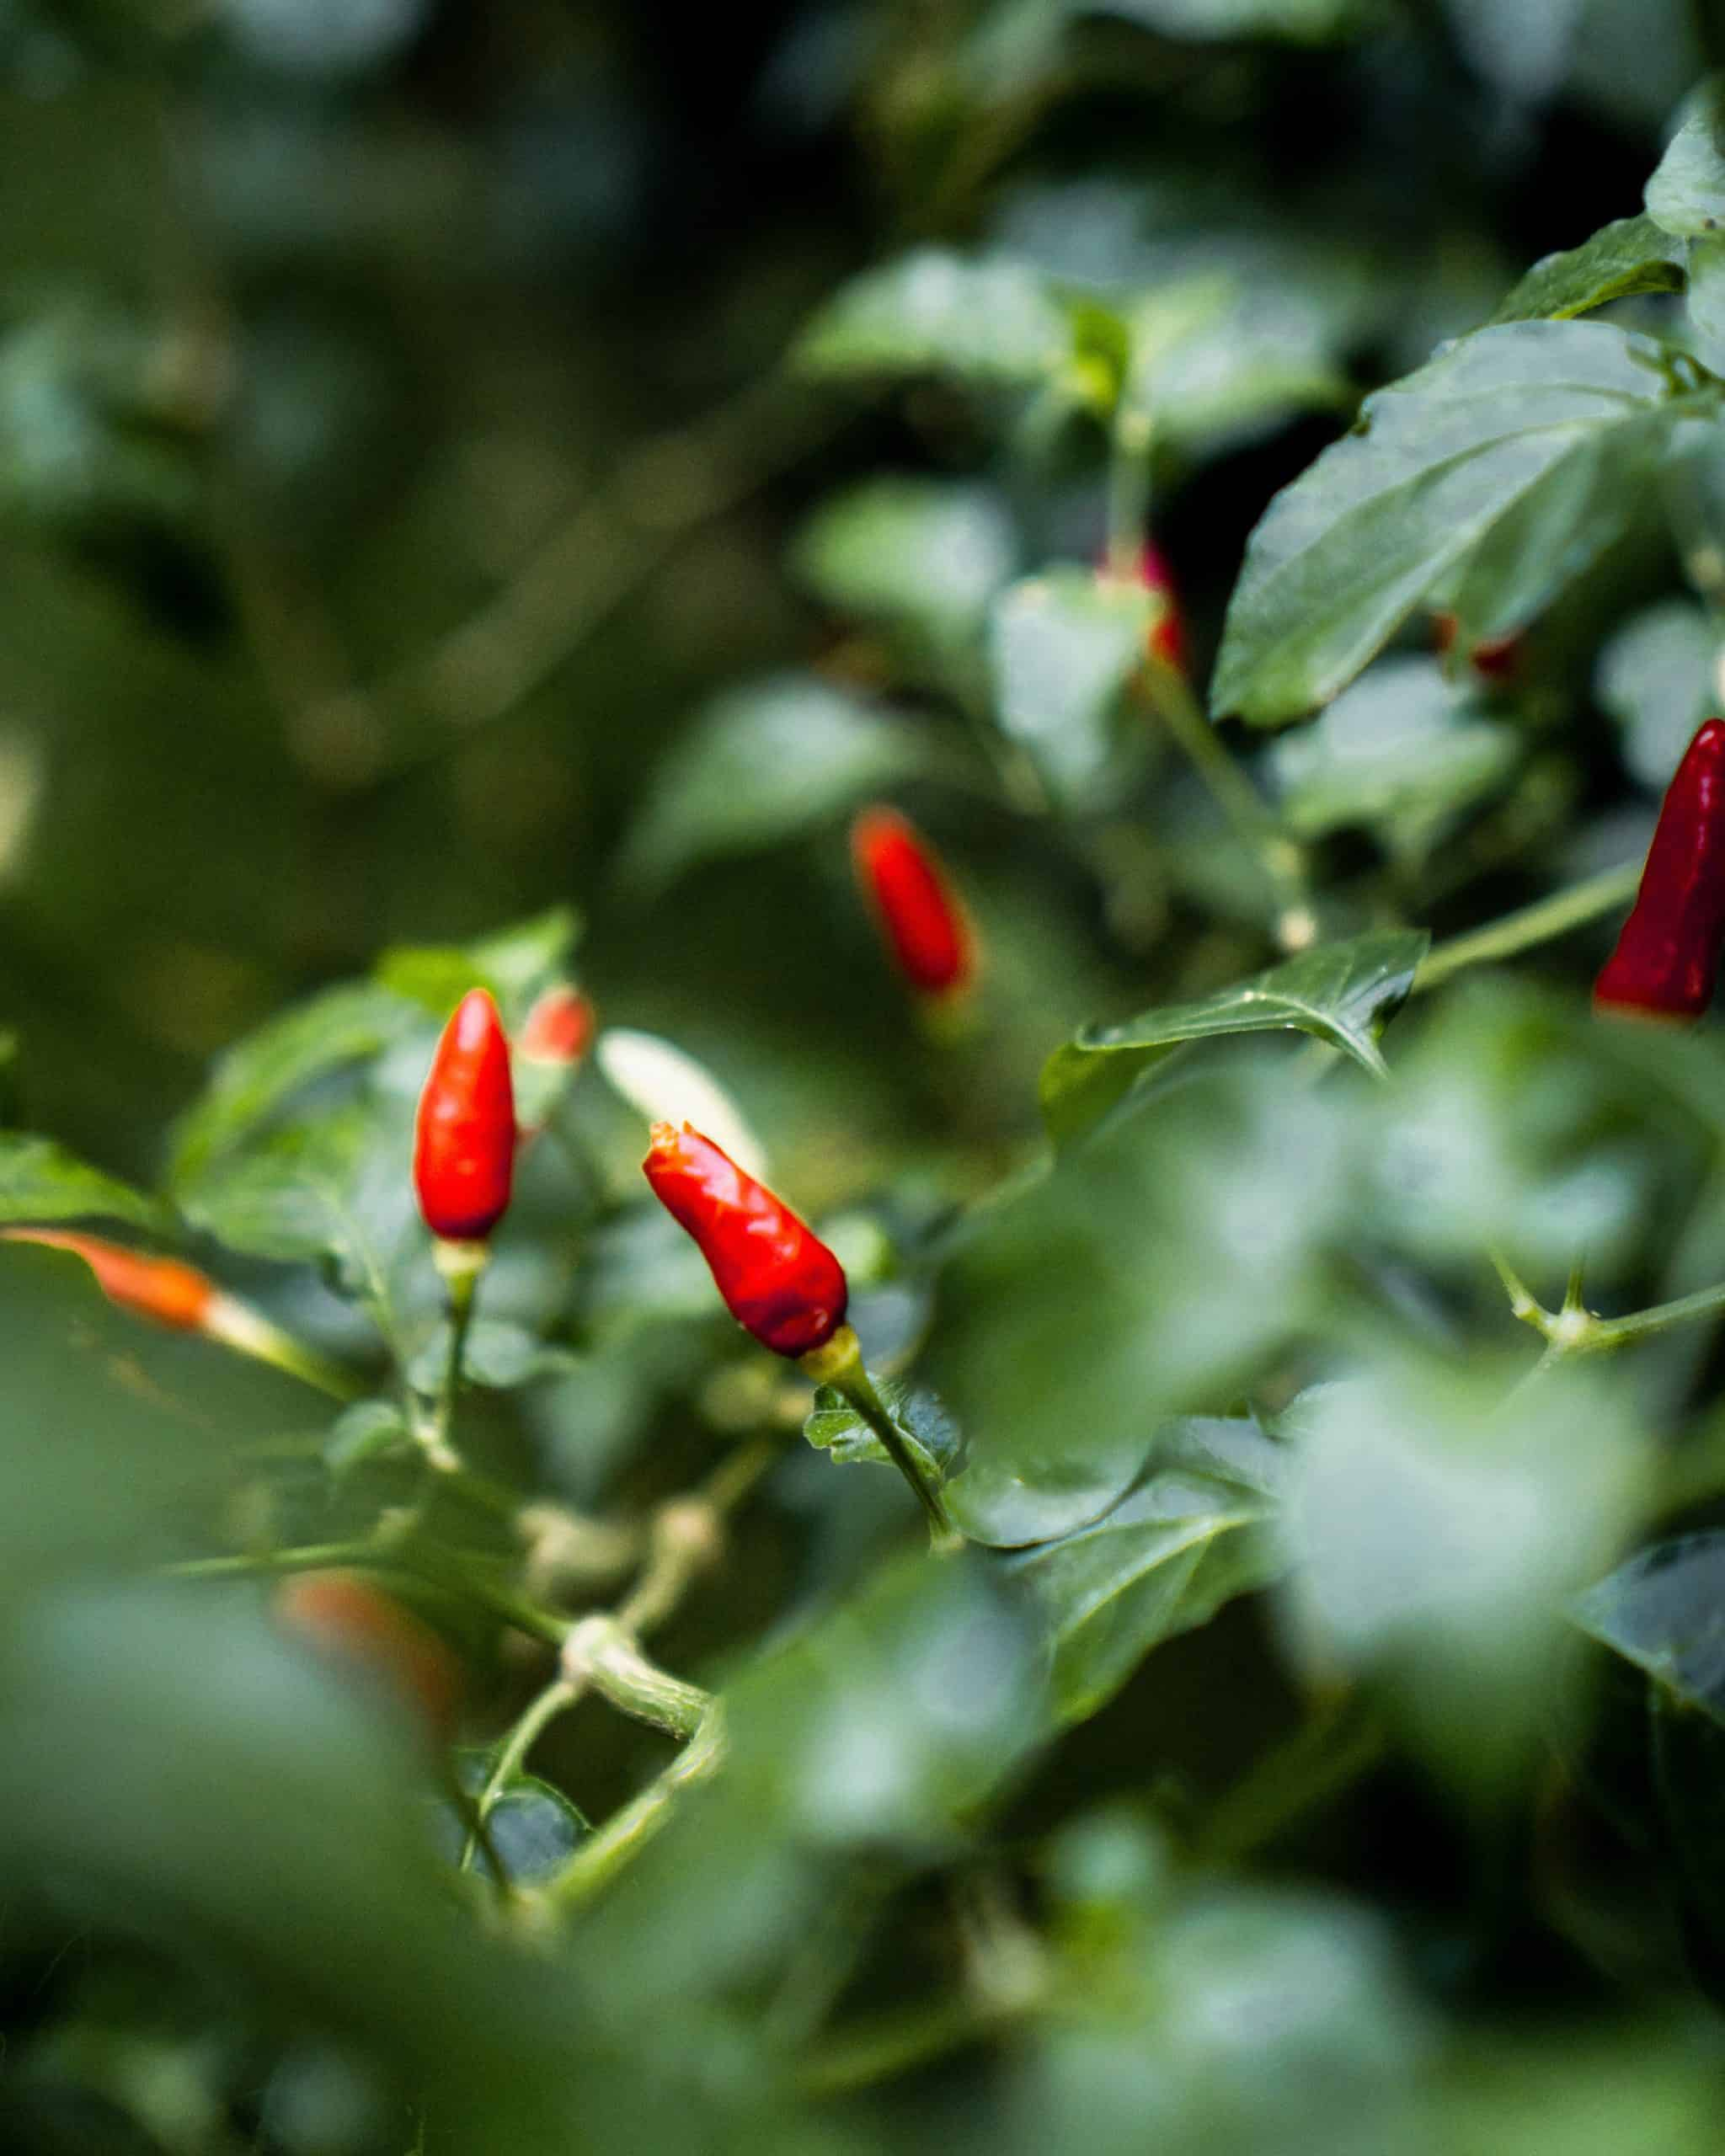 Spicy Food: Does It Cause Cancer?